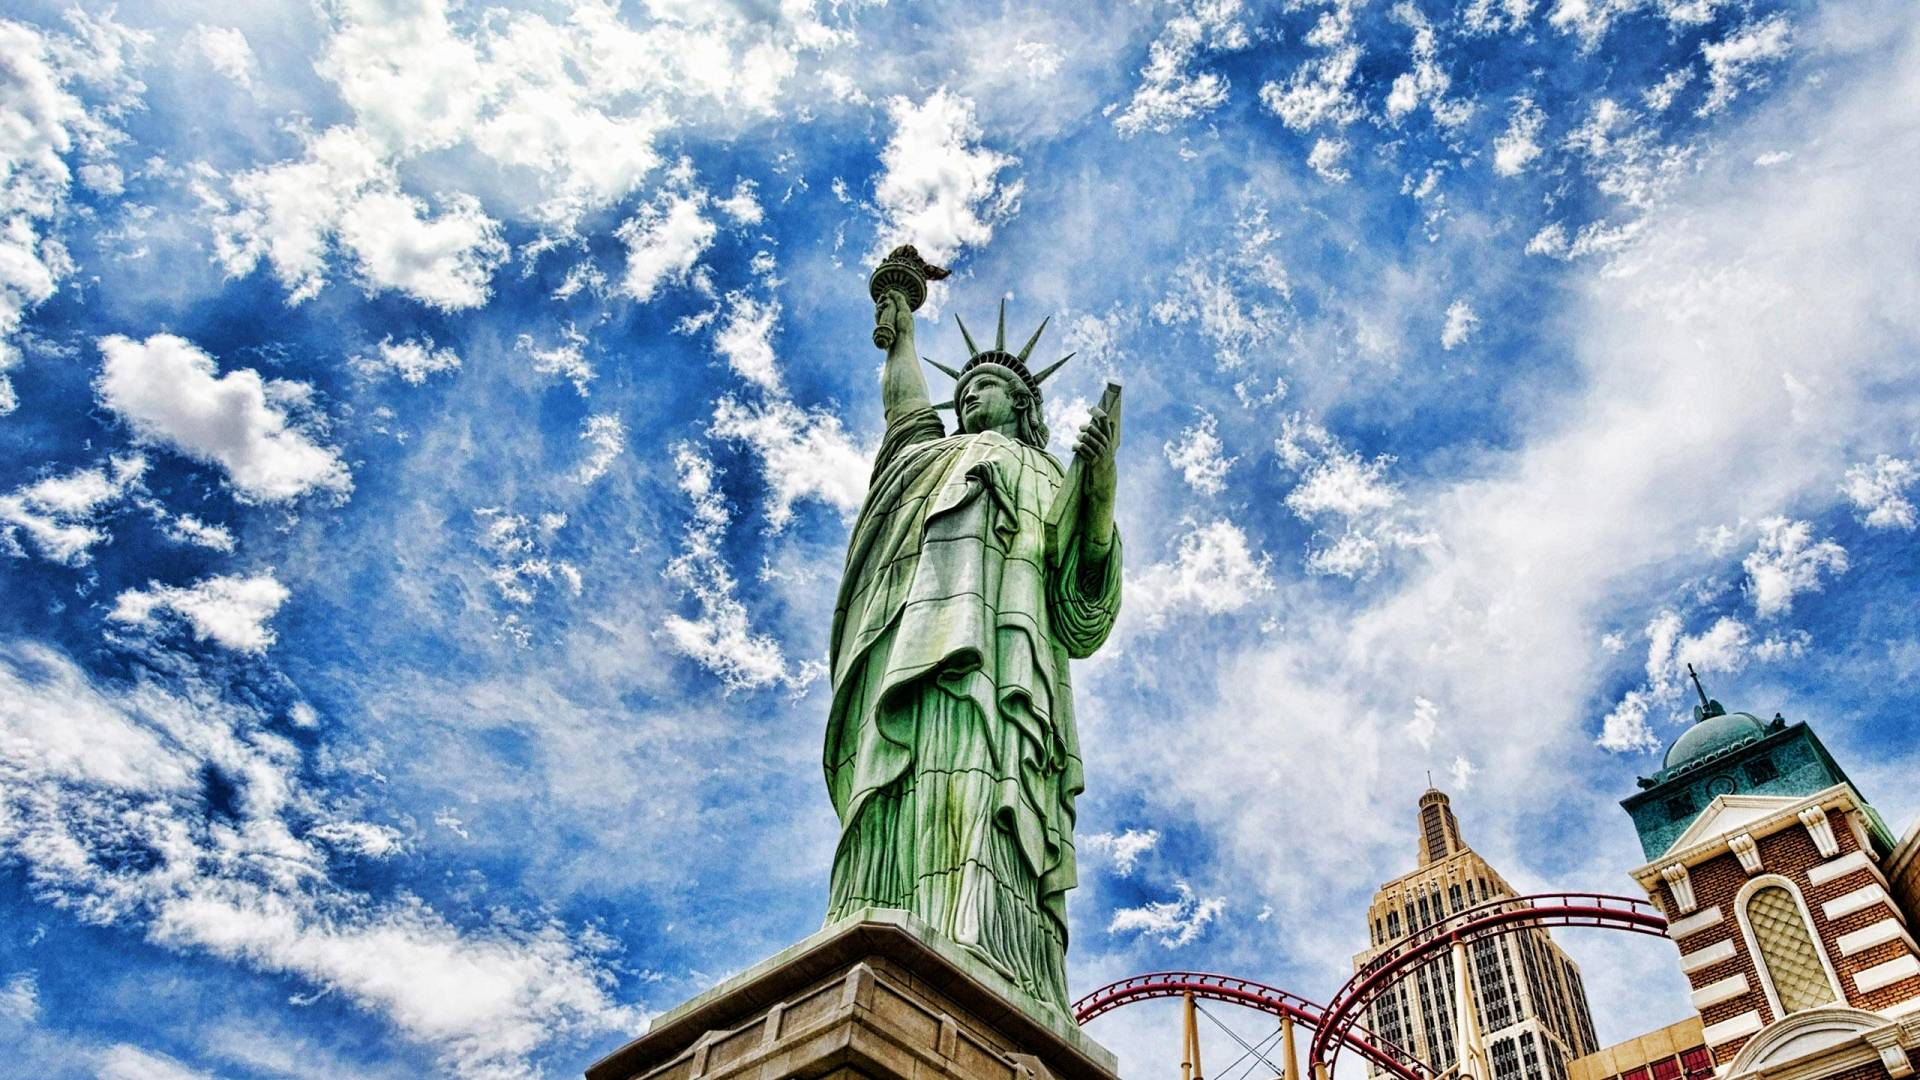 statue of liberty wallpapers - wallpaper cave